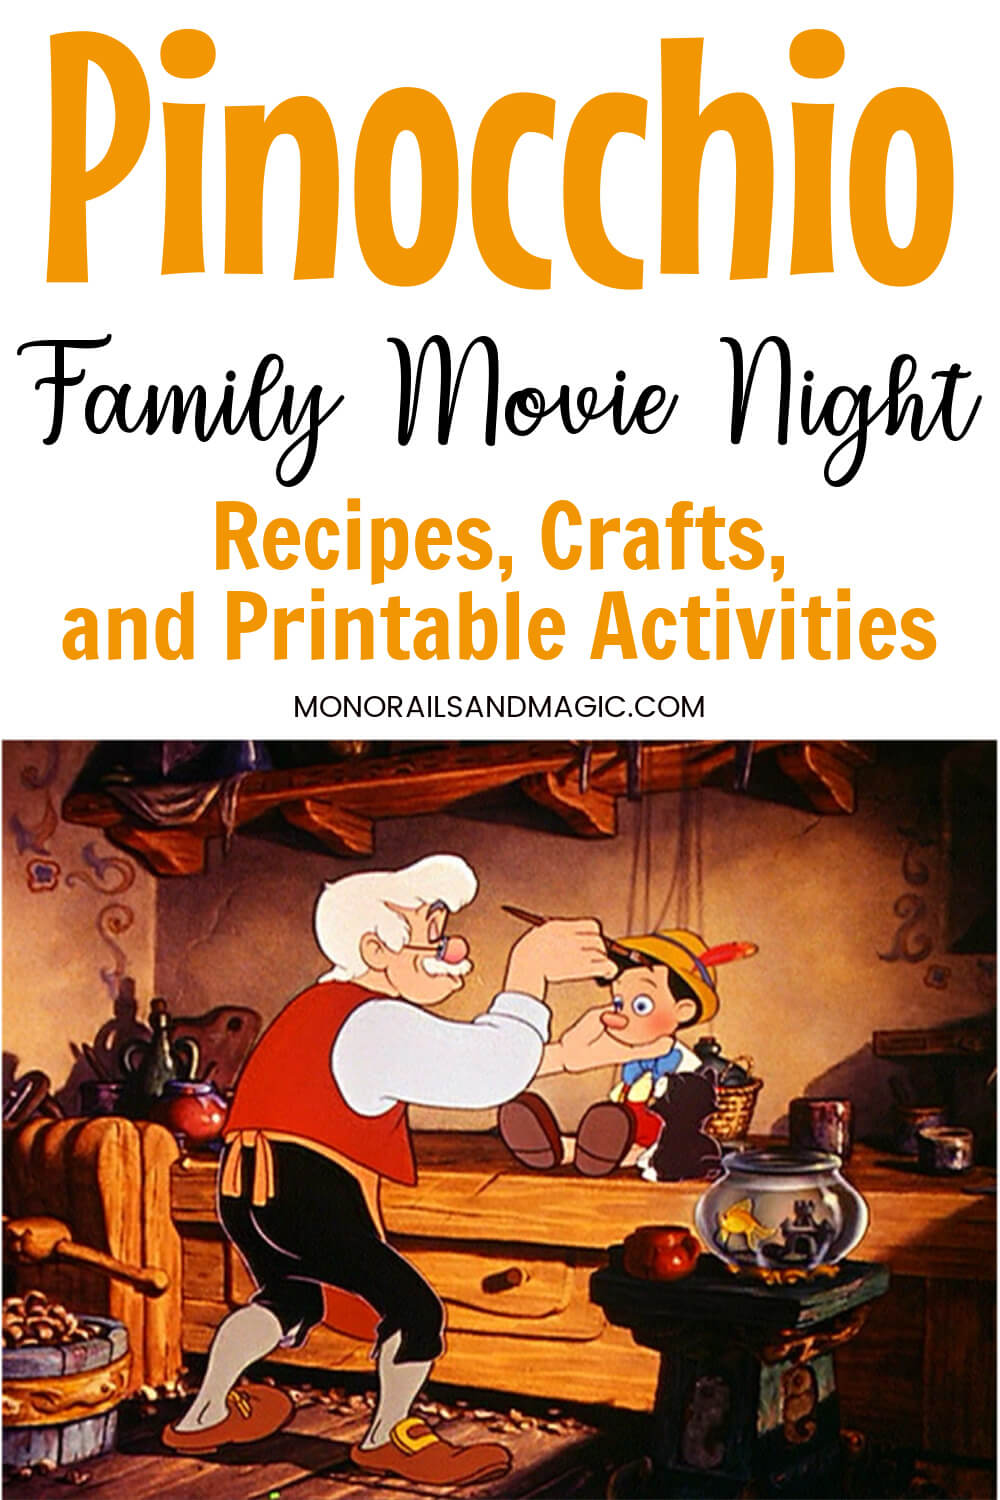 Recipes, crafts, and printable activities for a Pinocchio family movie night.